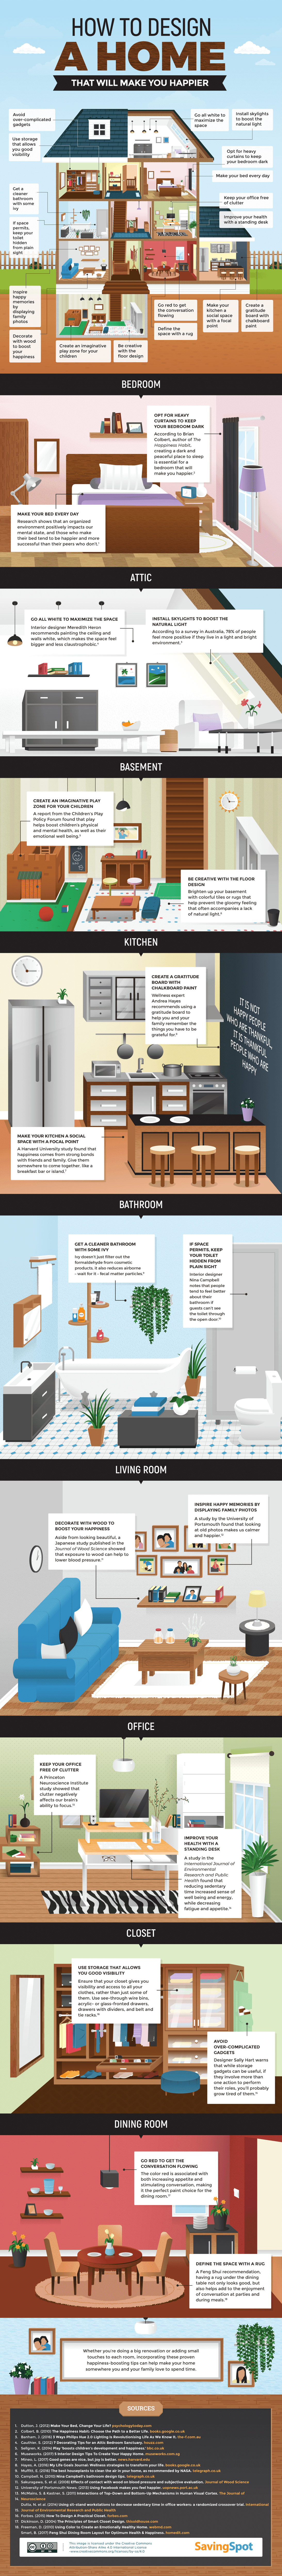 How To Design A Home That Will Make You Happier Infographic Design Architectural Design House Plans House Design